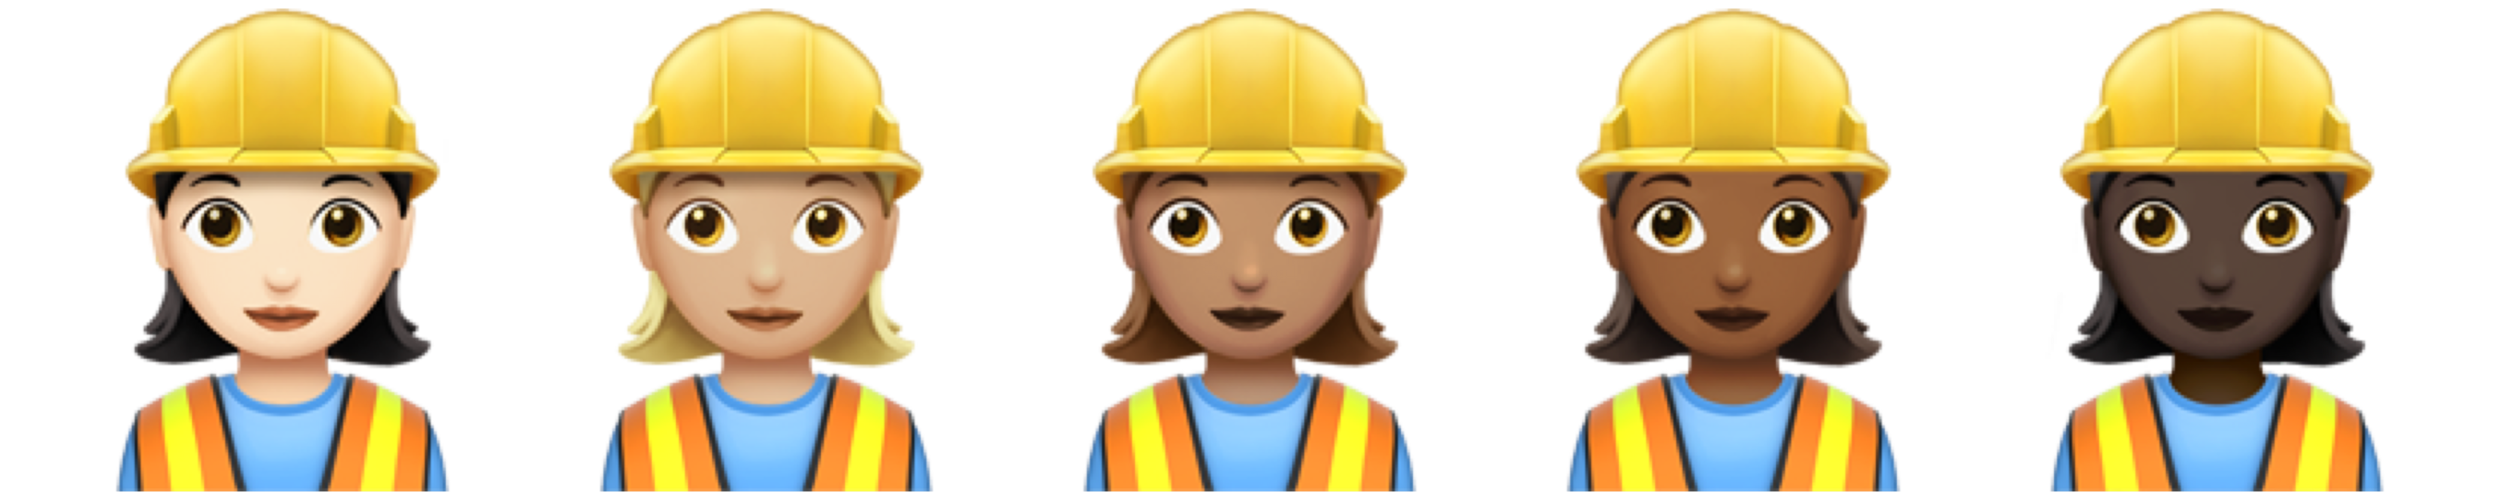 constructionemoji-01.png